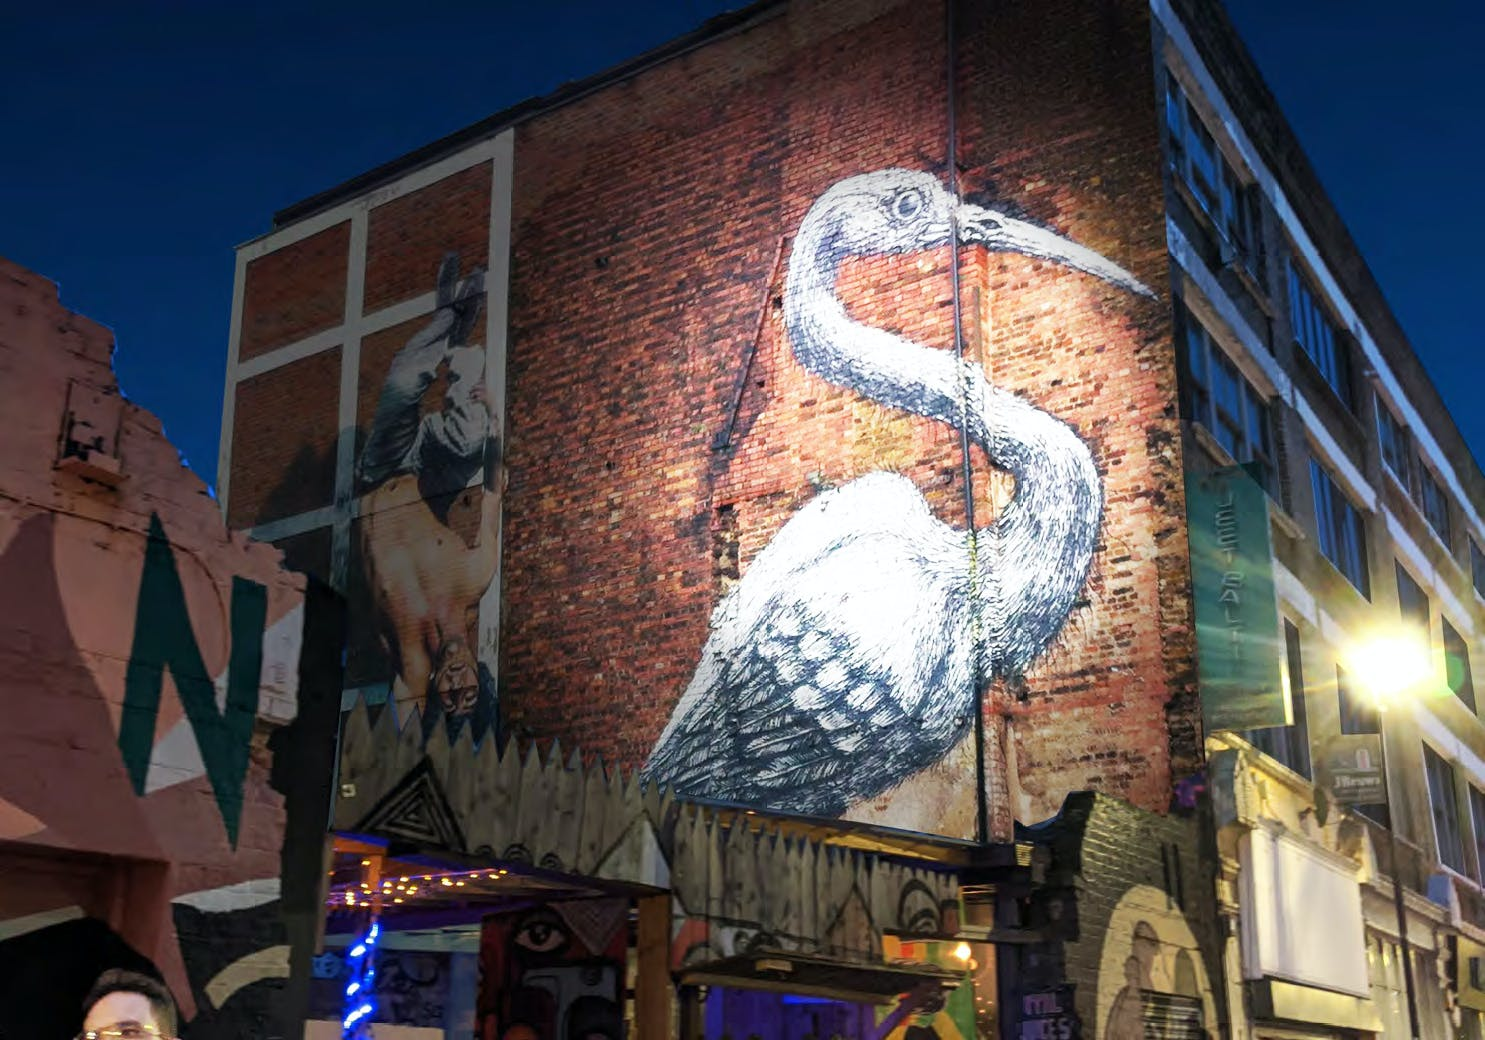 Improved lighting could be used to highlight landmarks including street art